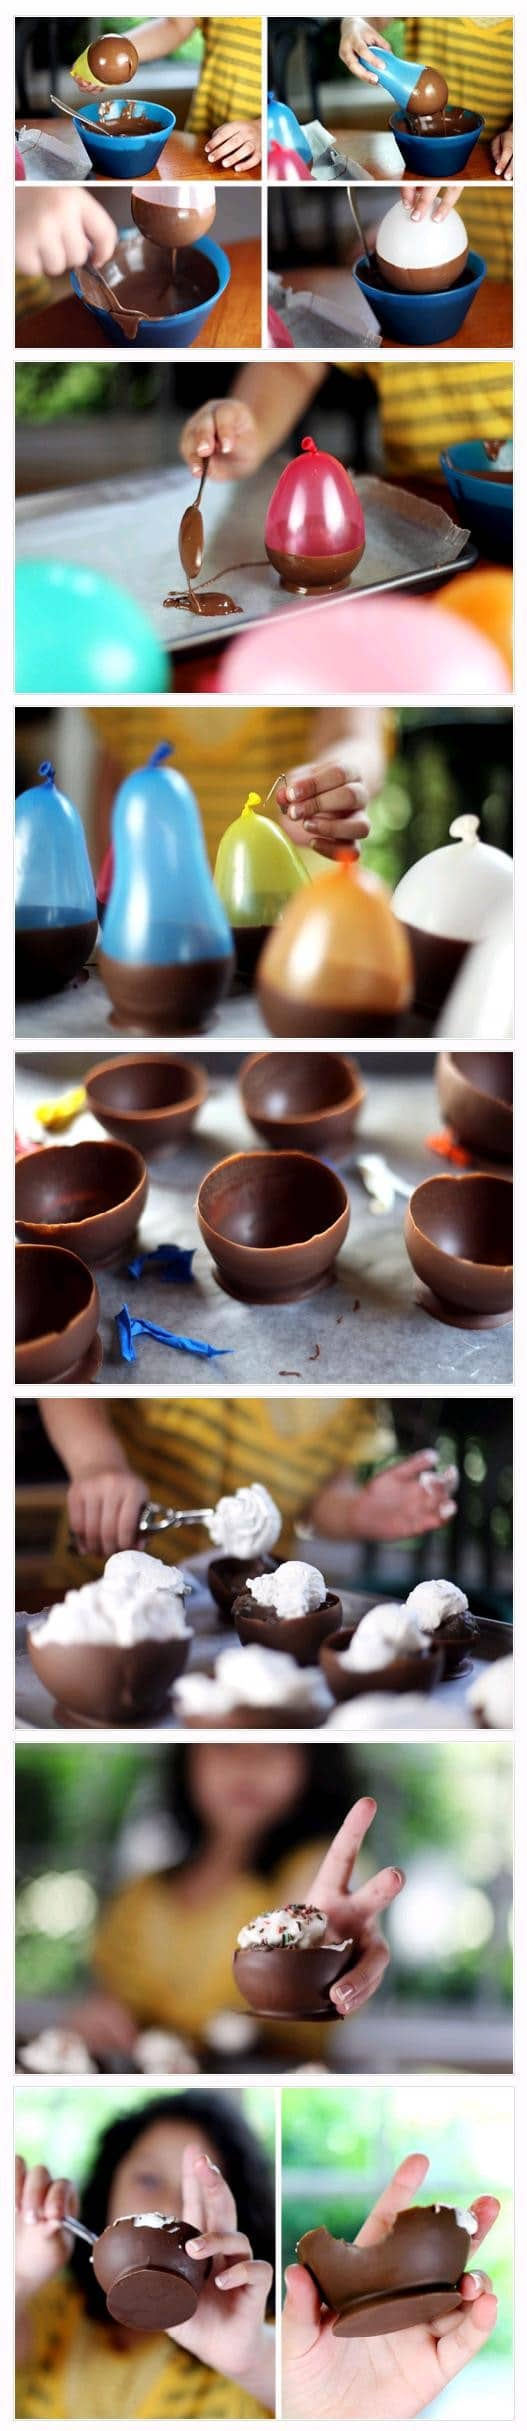 chocolate-ice-cream-bowls